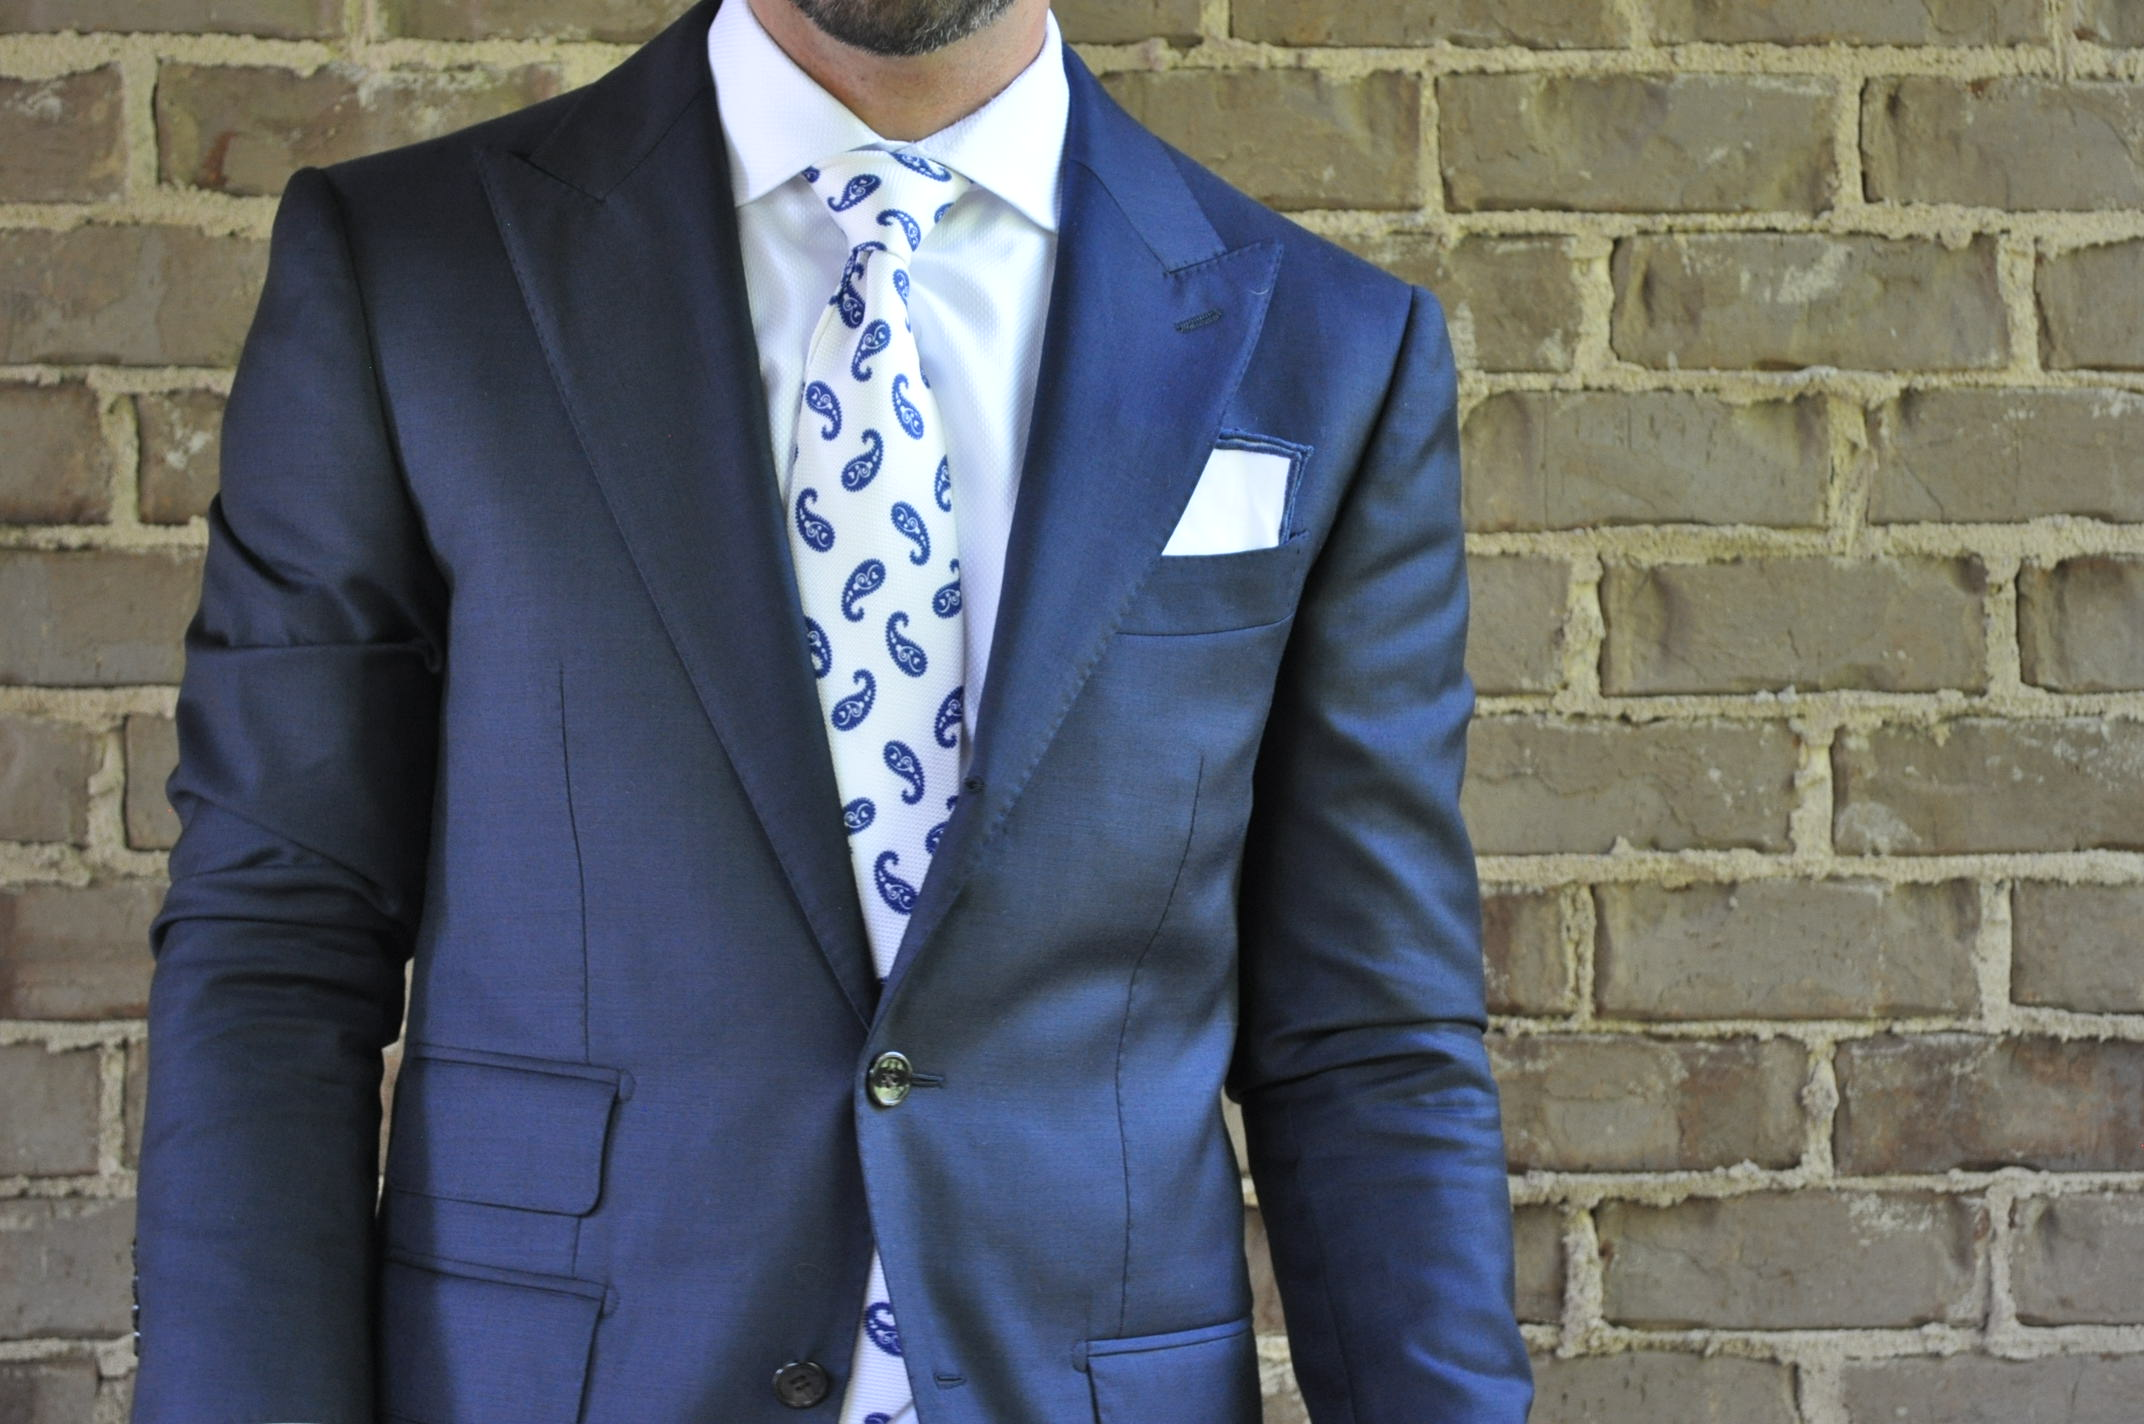 Here again, the pocket square picks up the colors in the outfit. -